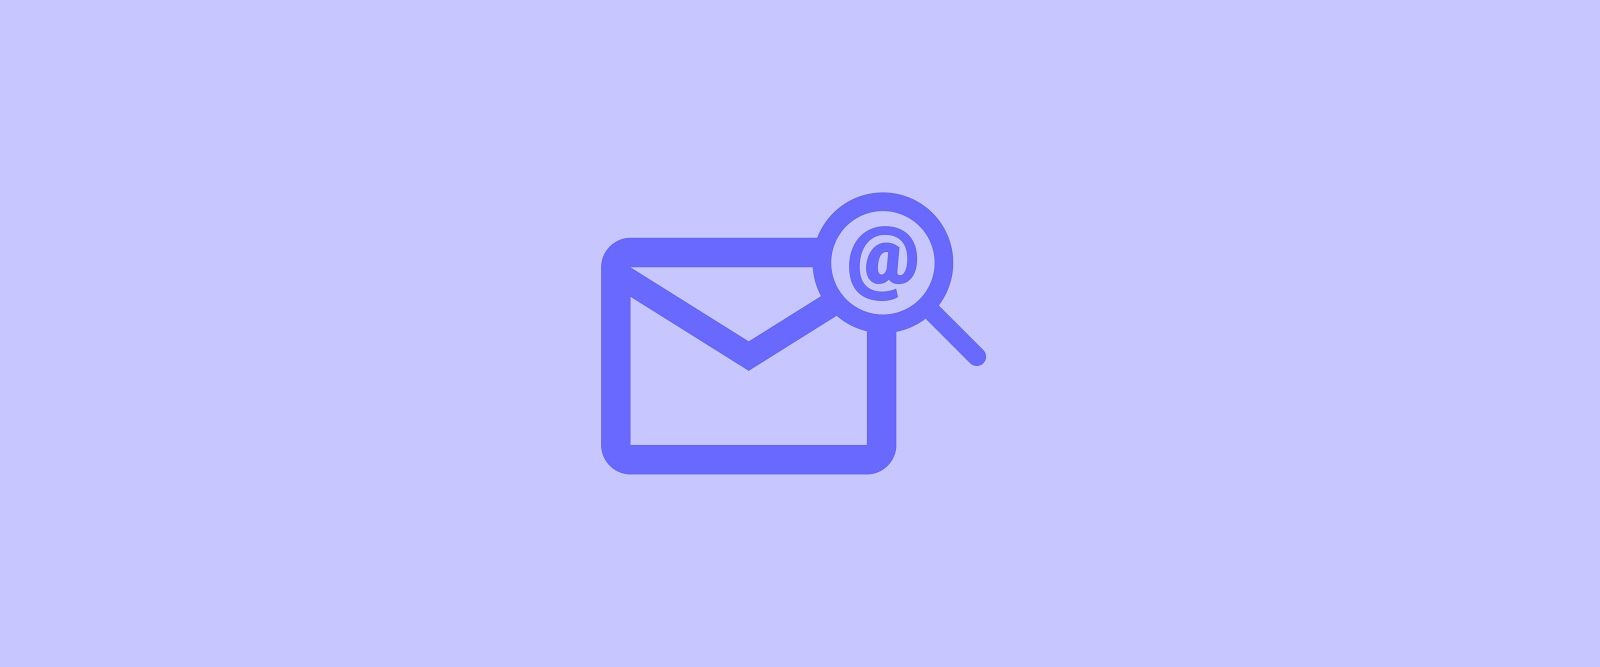 /9-super-effective-practices-to-find-email-addresses-in-fewer-than-1-minute-mg1h3311 feature image